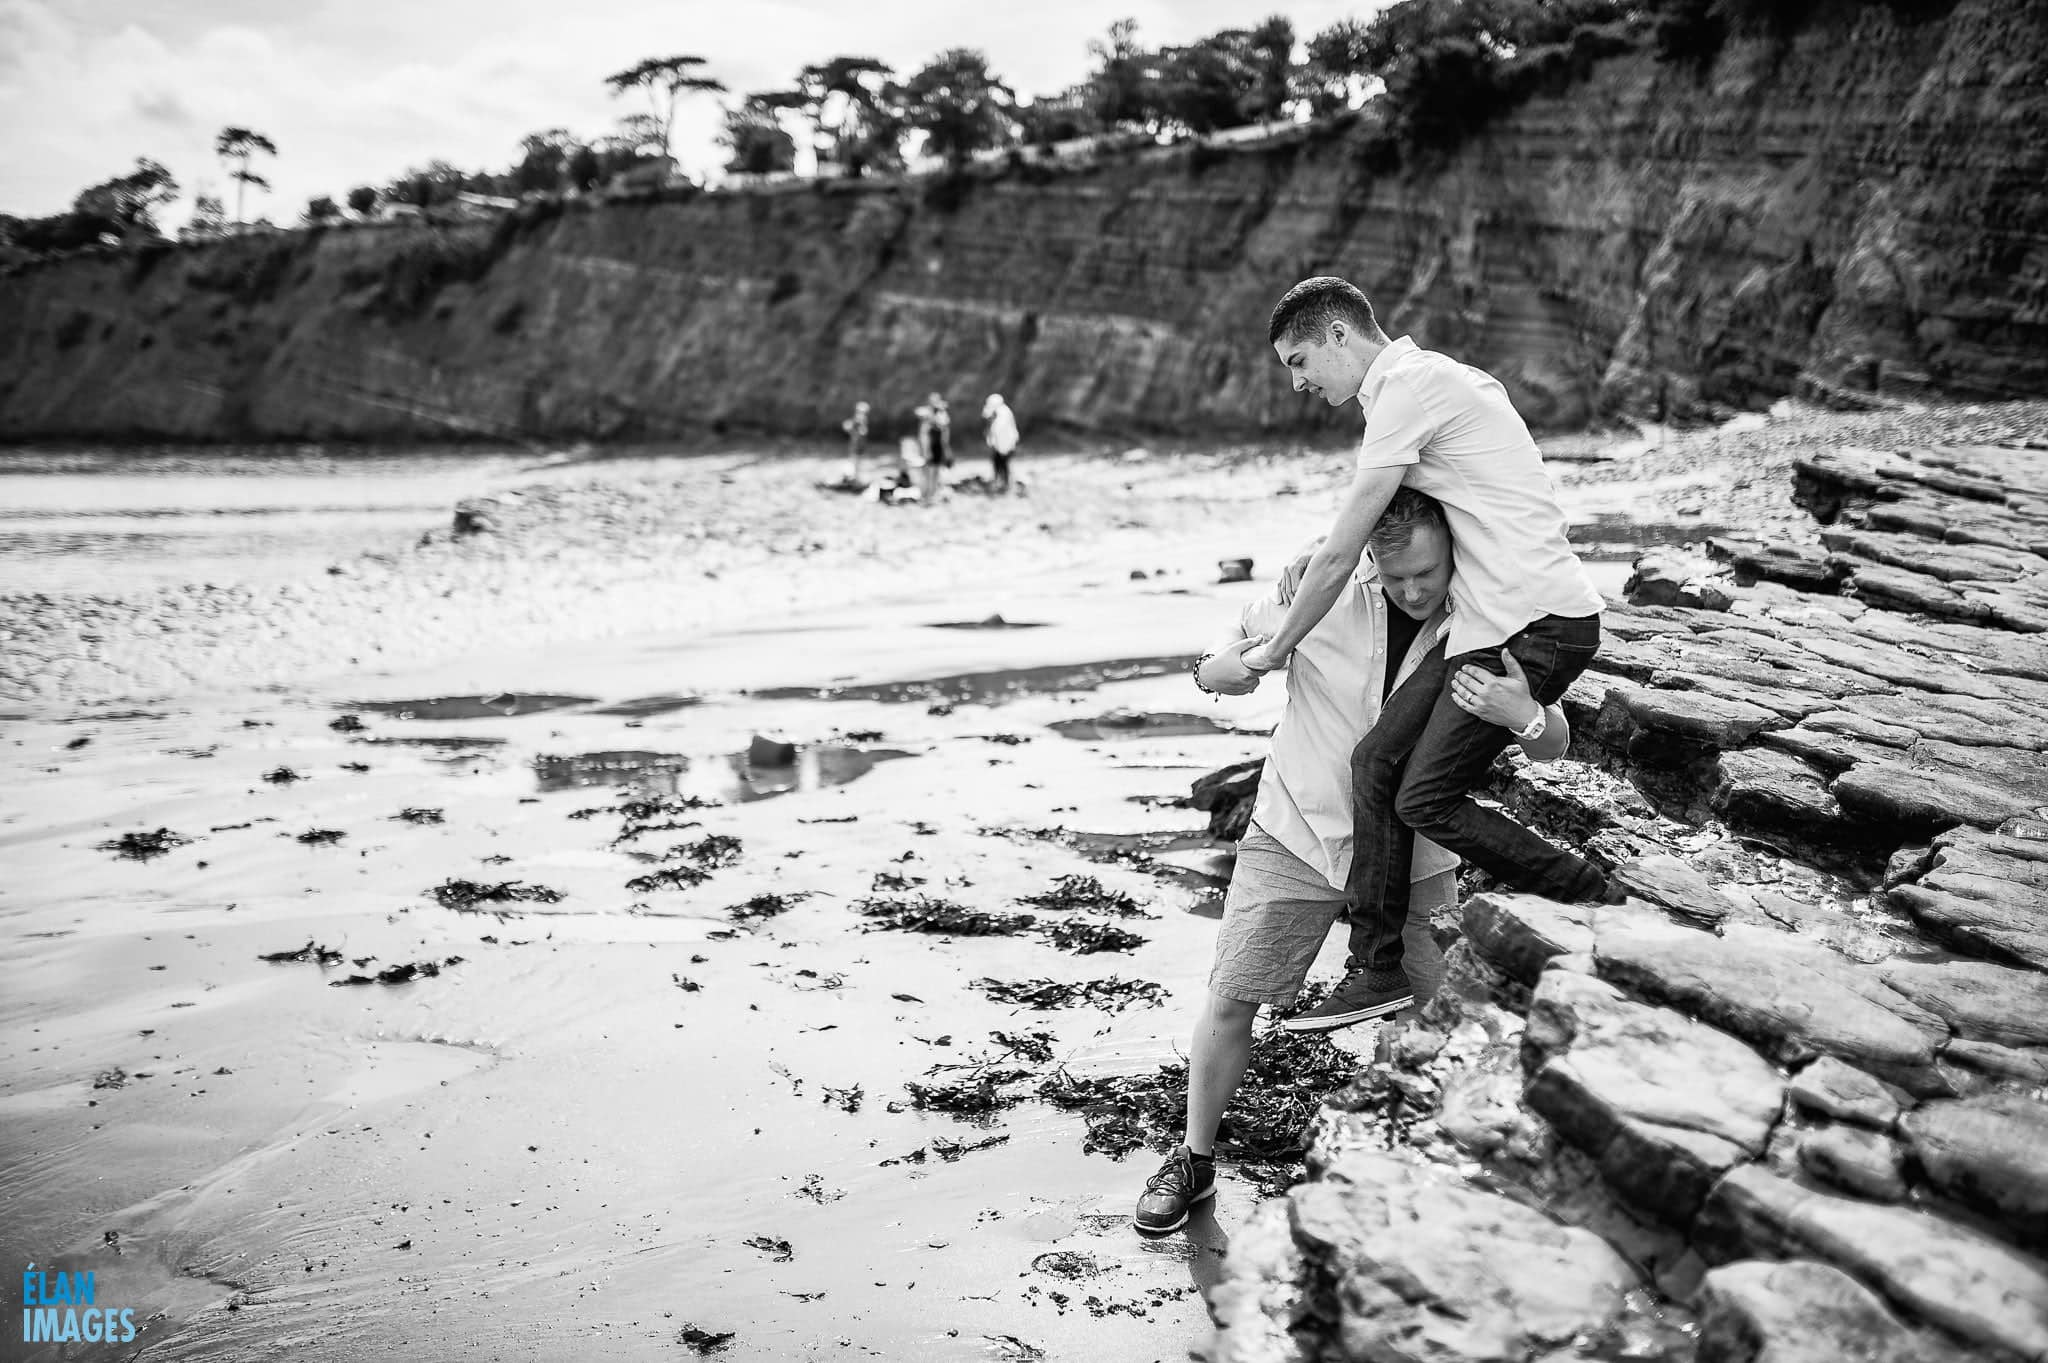 Engagement photo shoot at St Audrie's Bay, Devon 21